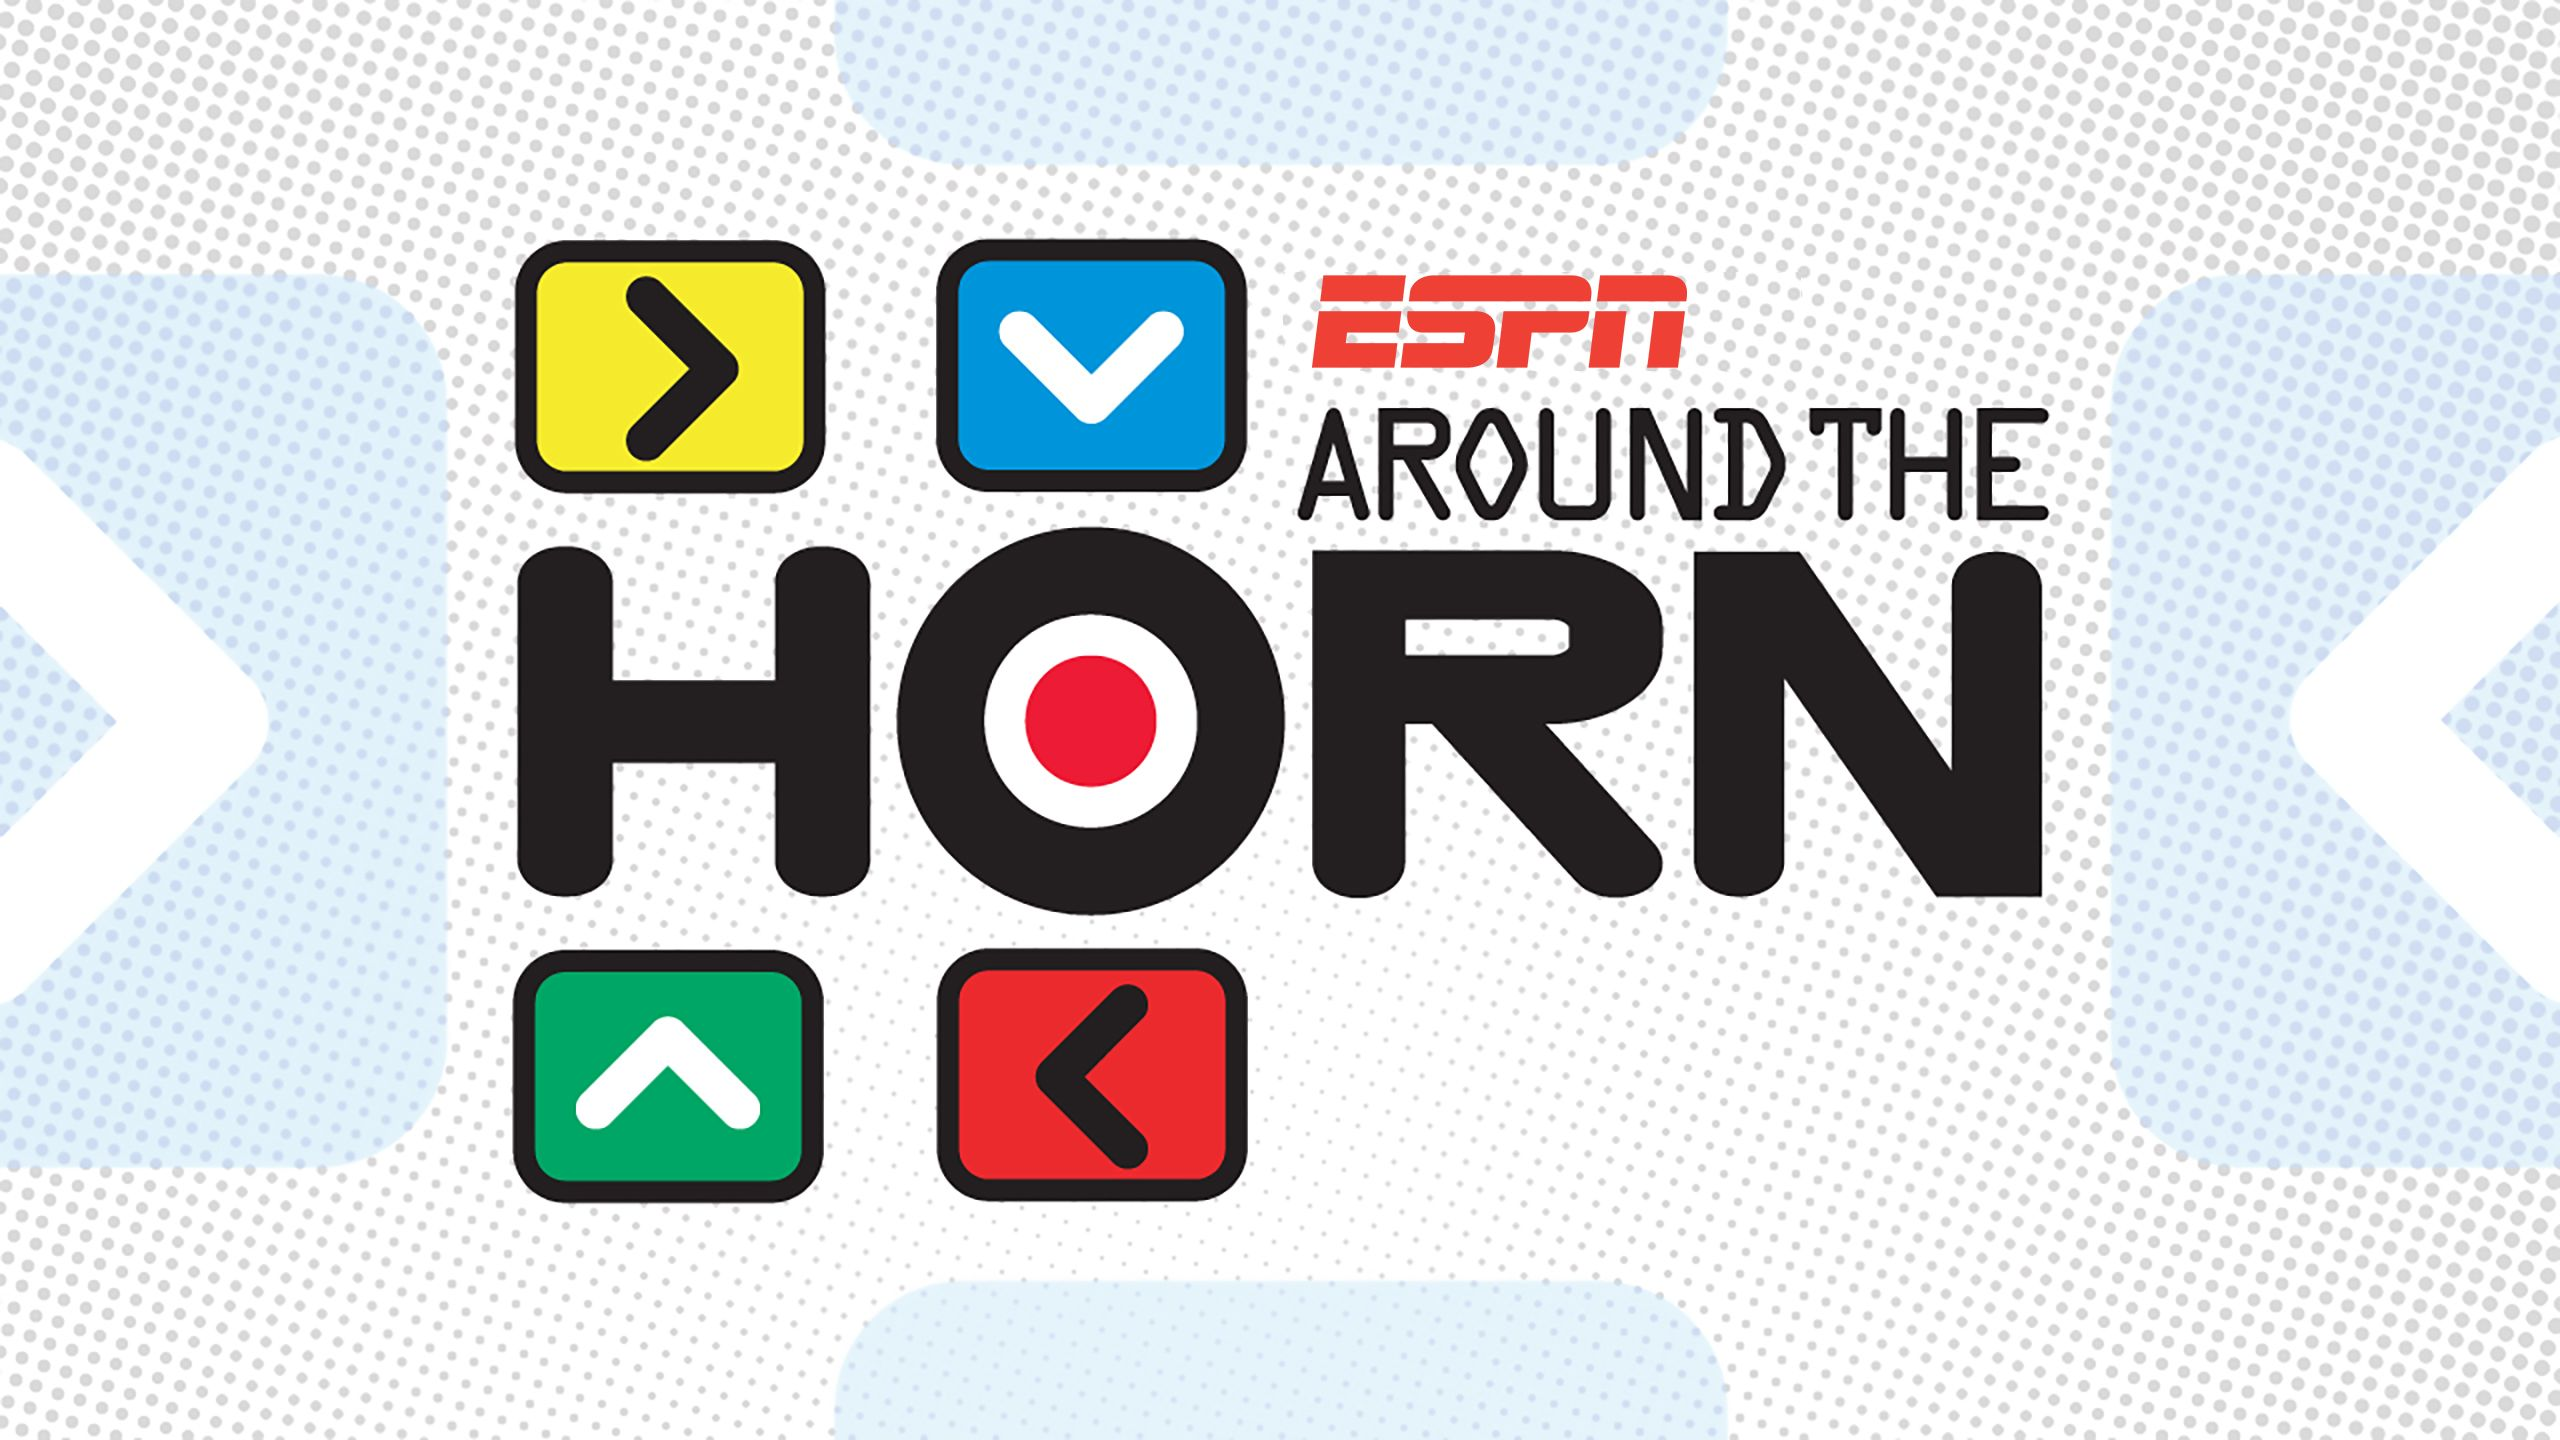 Wed, 6/20 - Around The Horn